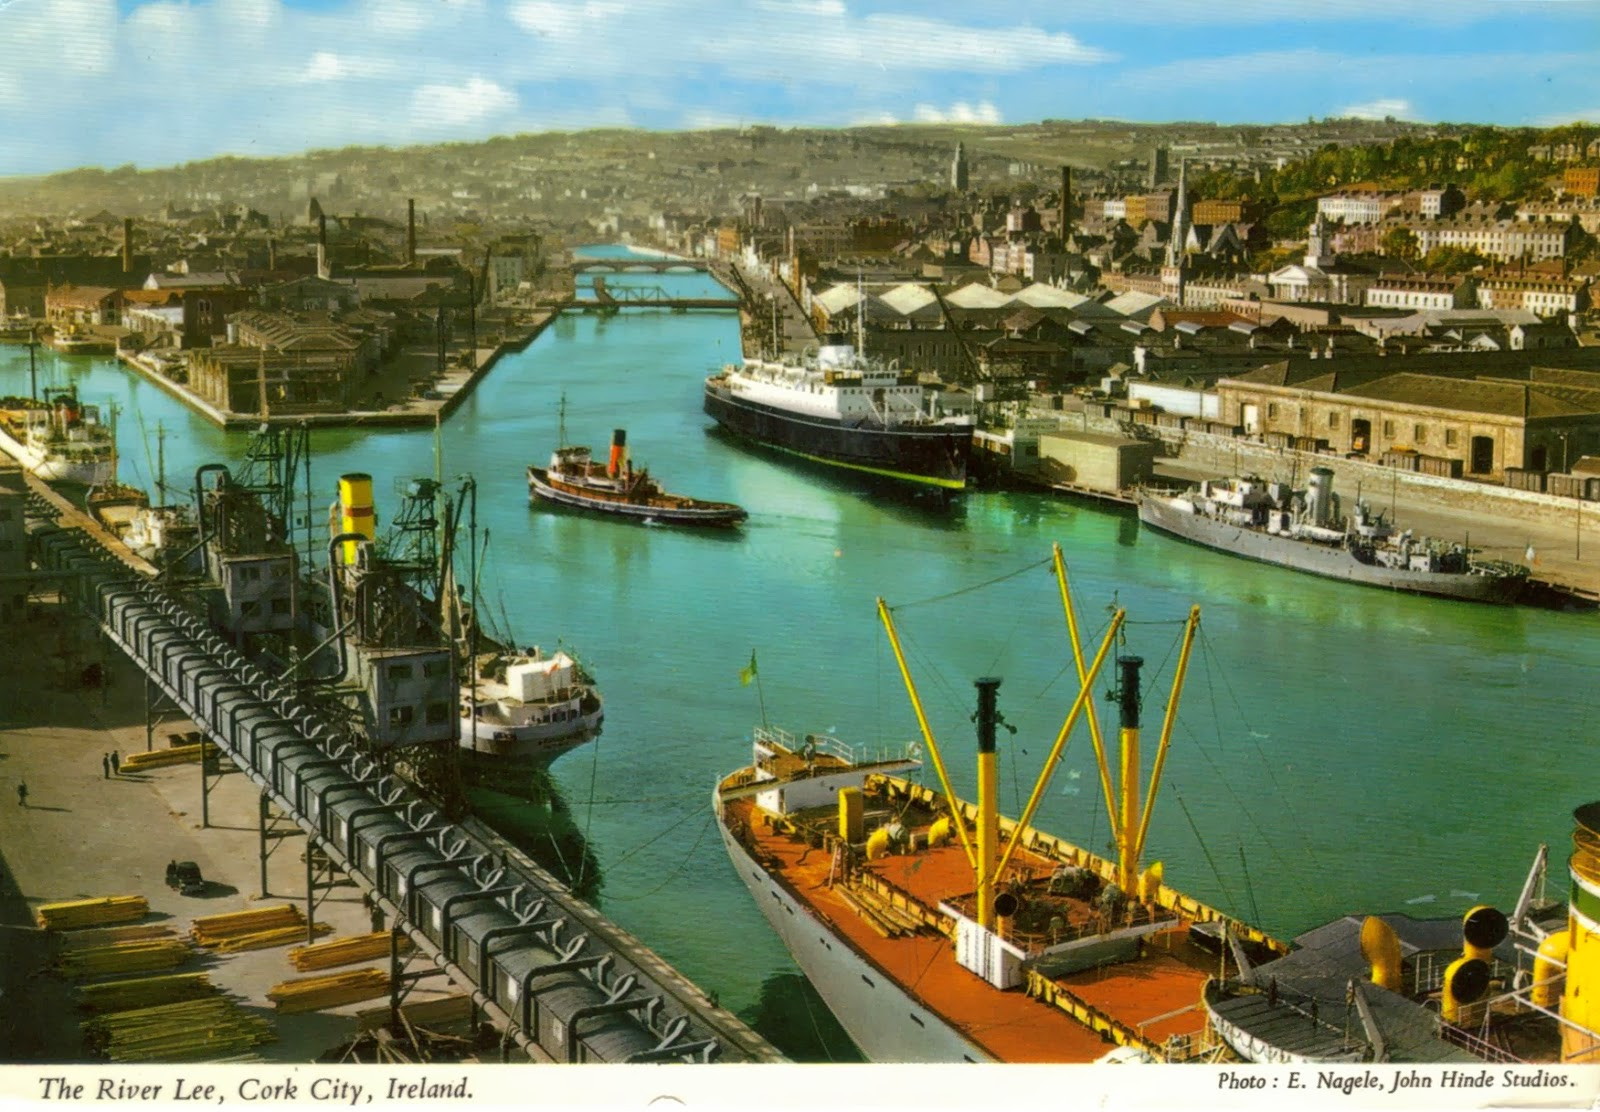 Postcards And Viewcards S Postcard Of The River Lee